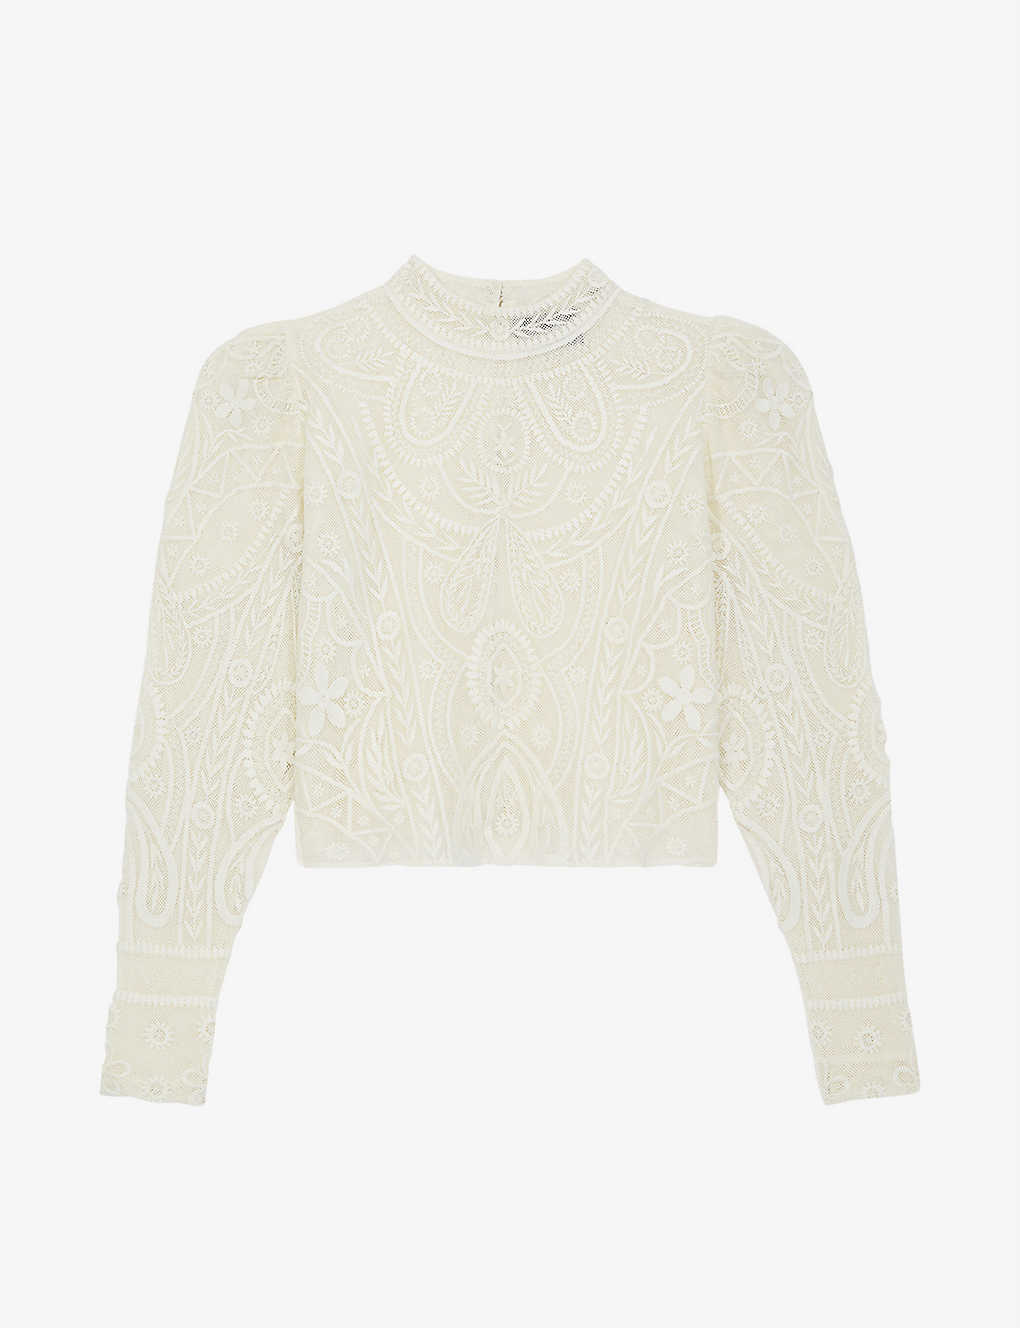 THE KOOPLES: Lace-detail woven top